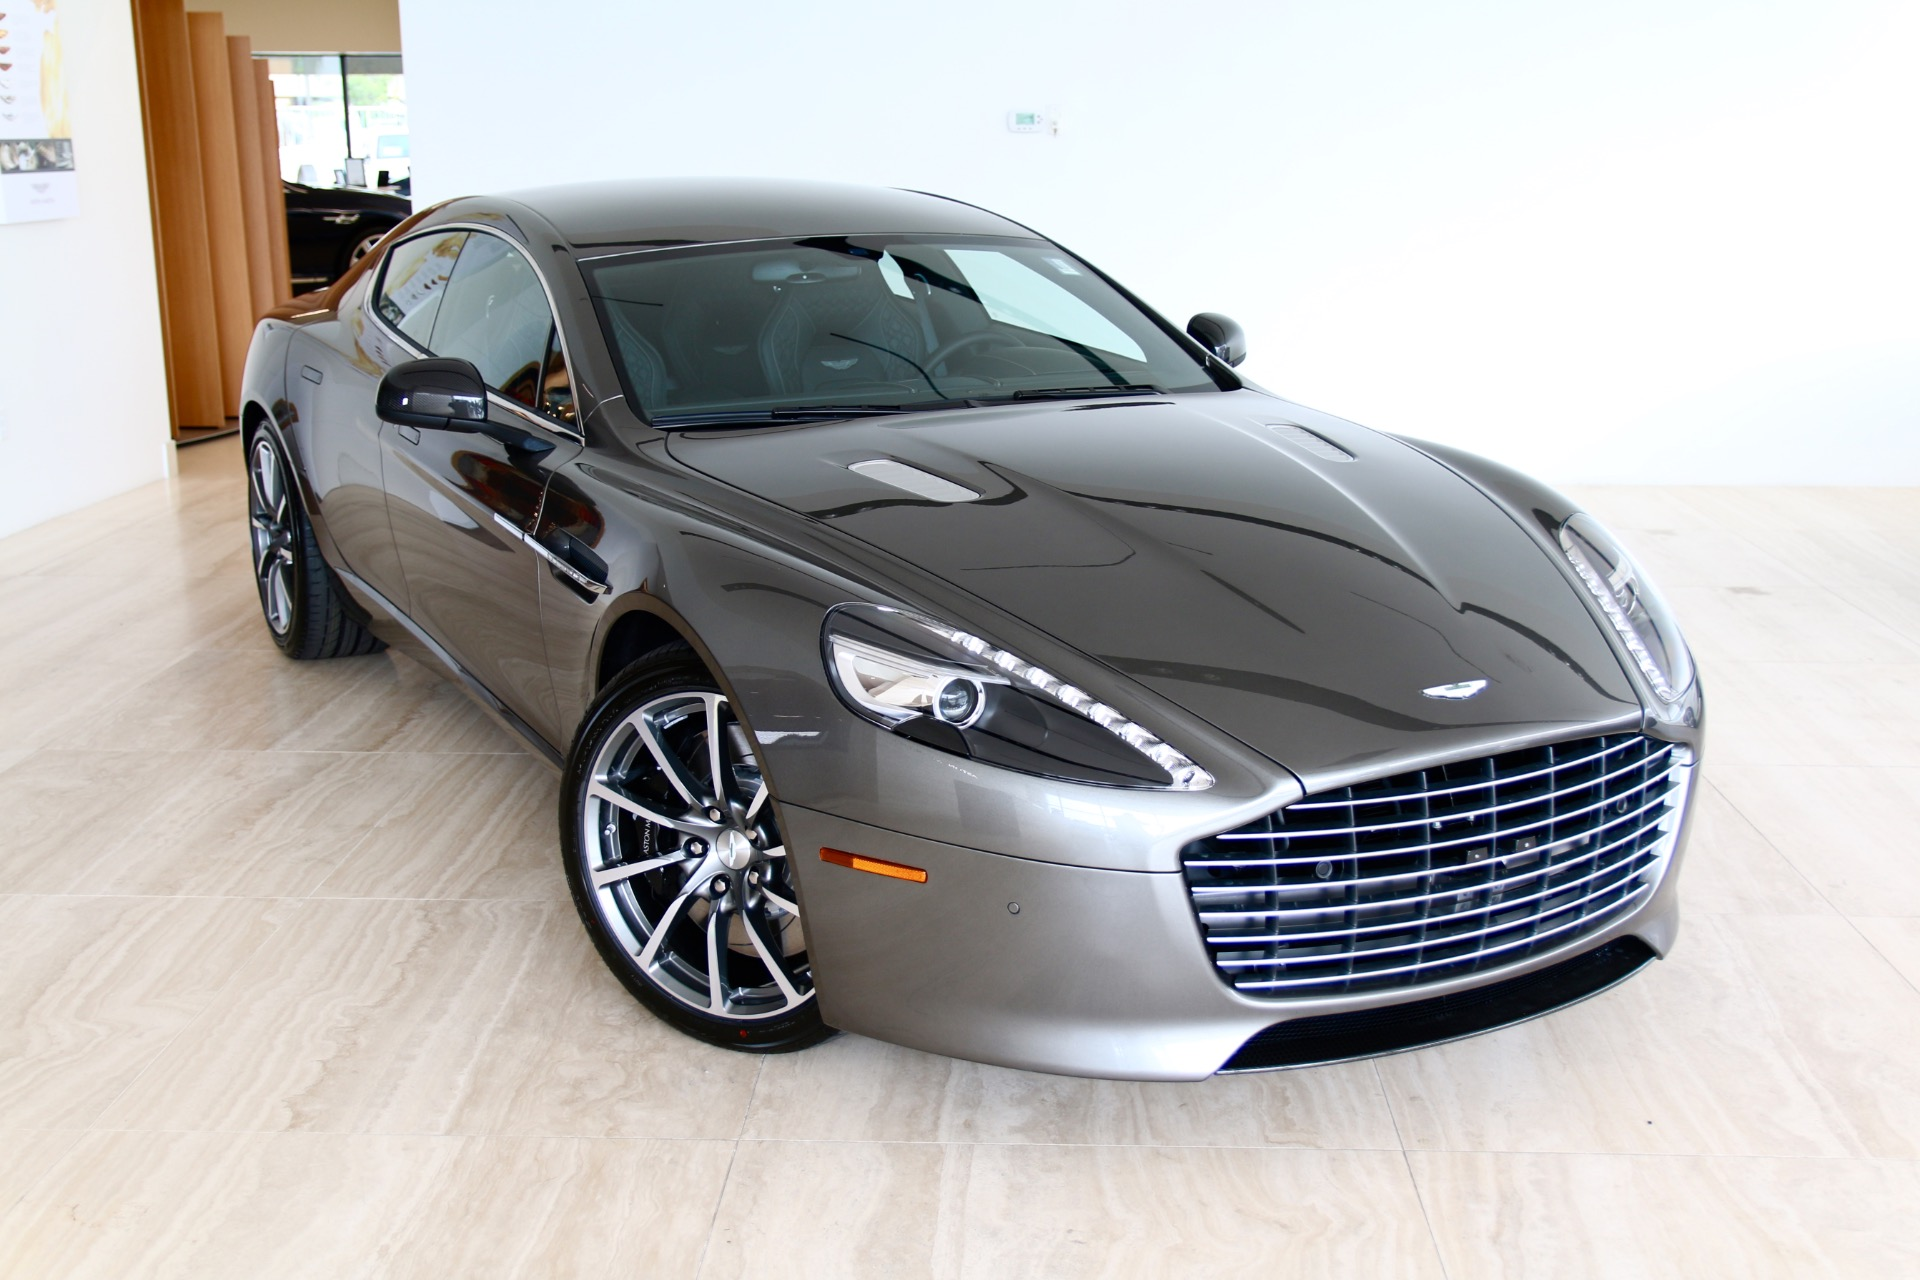 2017 Aston Martin Rapide S Stock 7nf05948 For Sale Near Vienna Va Va Aston Martin Dealer For Sale In Vienna Va 7nf05948 Exclusive Automotive Group